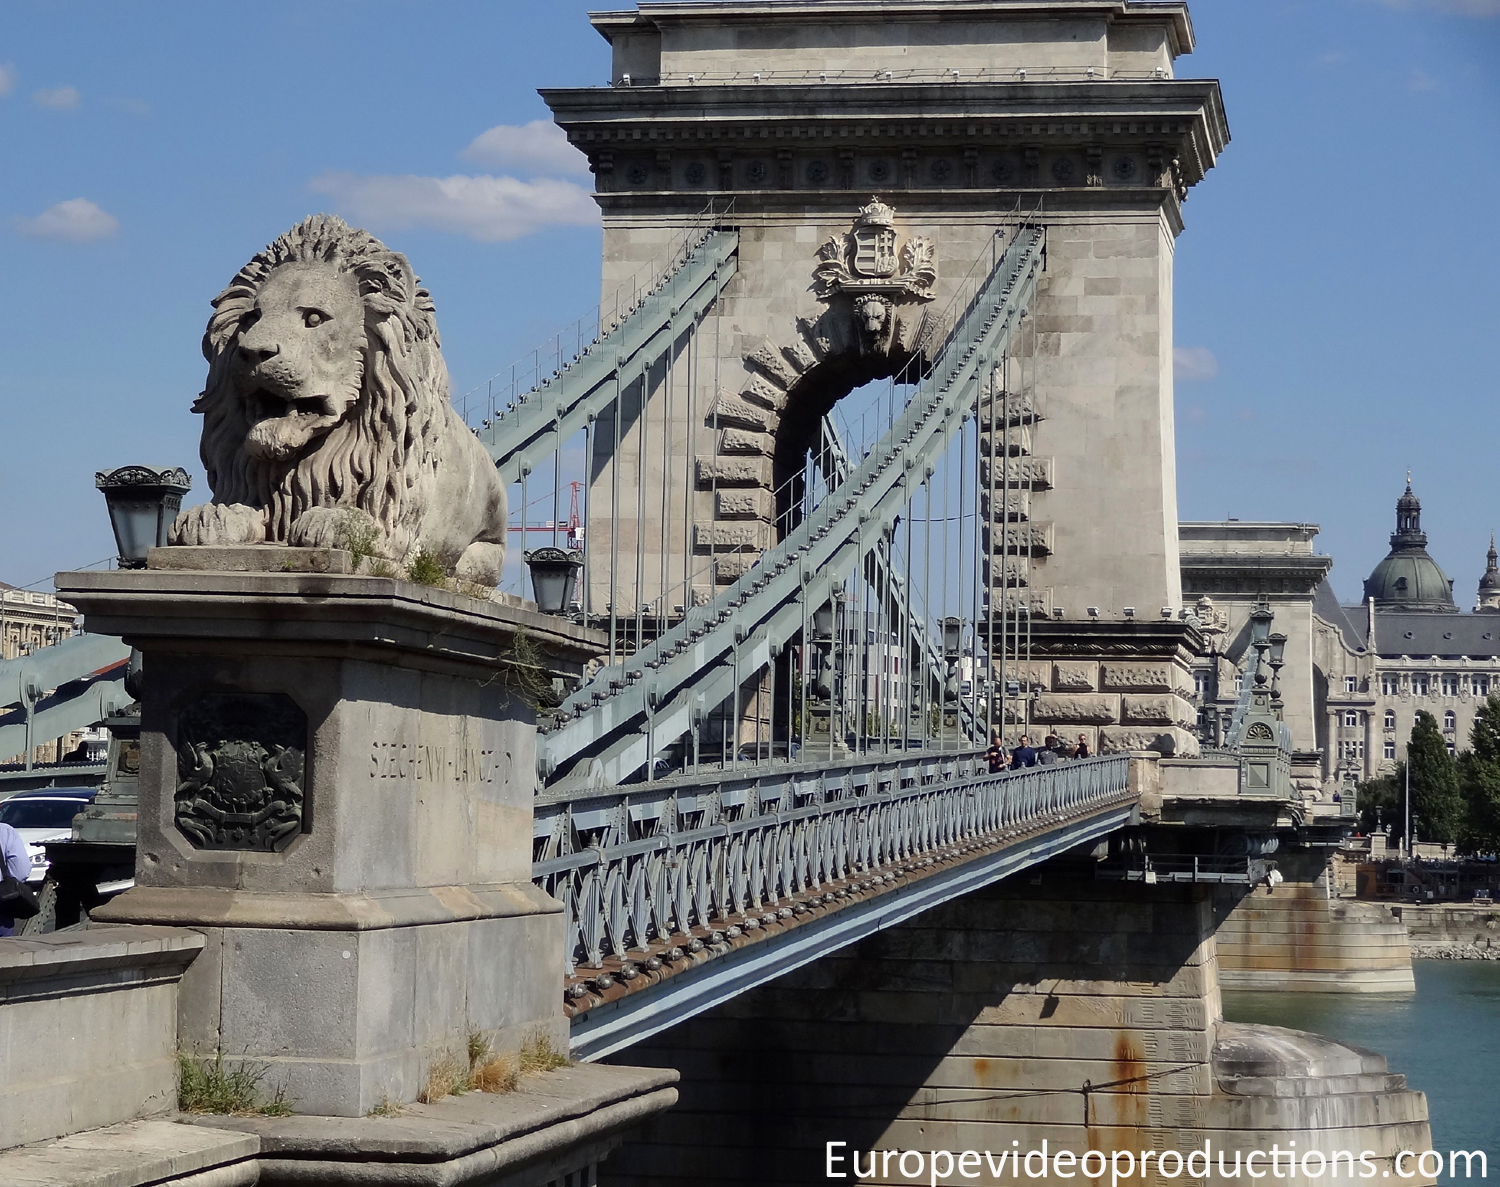 The Chain Bridge in Budapest in Hungary